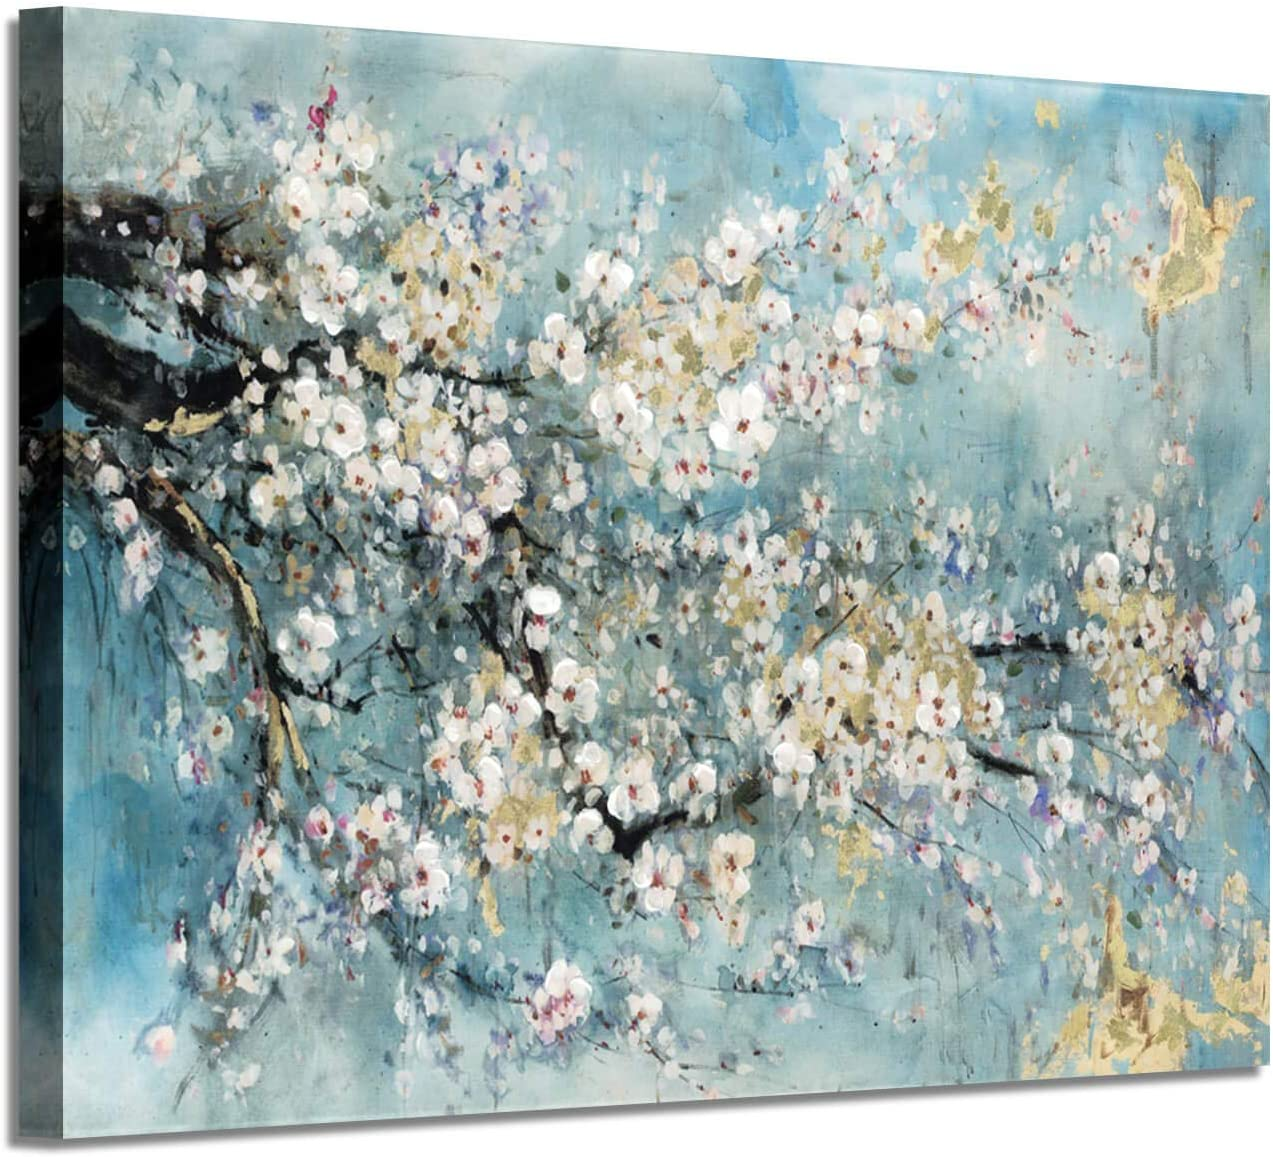 Abstract Flower Canvas Wall Art Dogwood Painting Artwork Picture For Living Room 36 W X 24 H Multi Sized Paintings